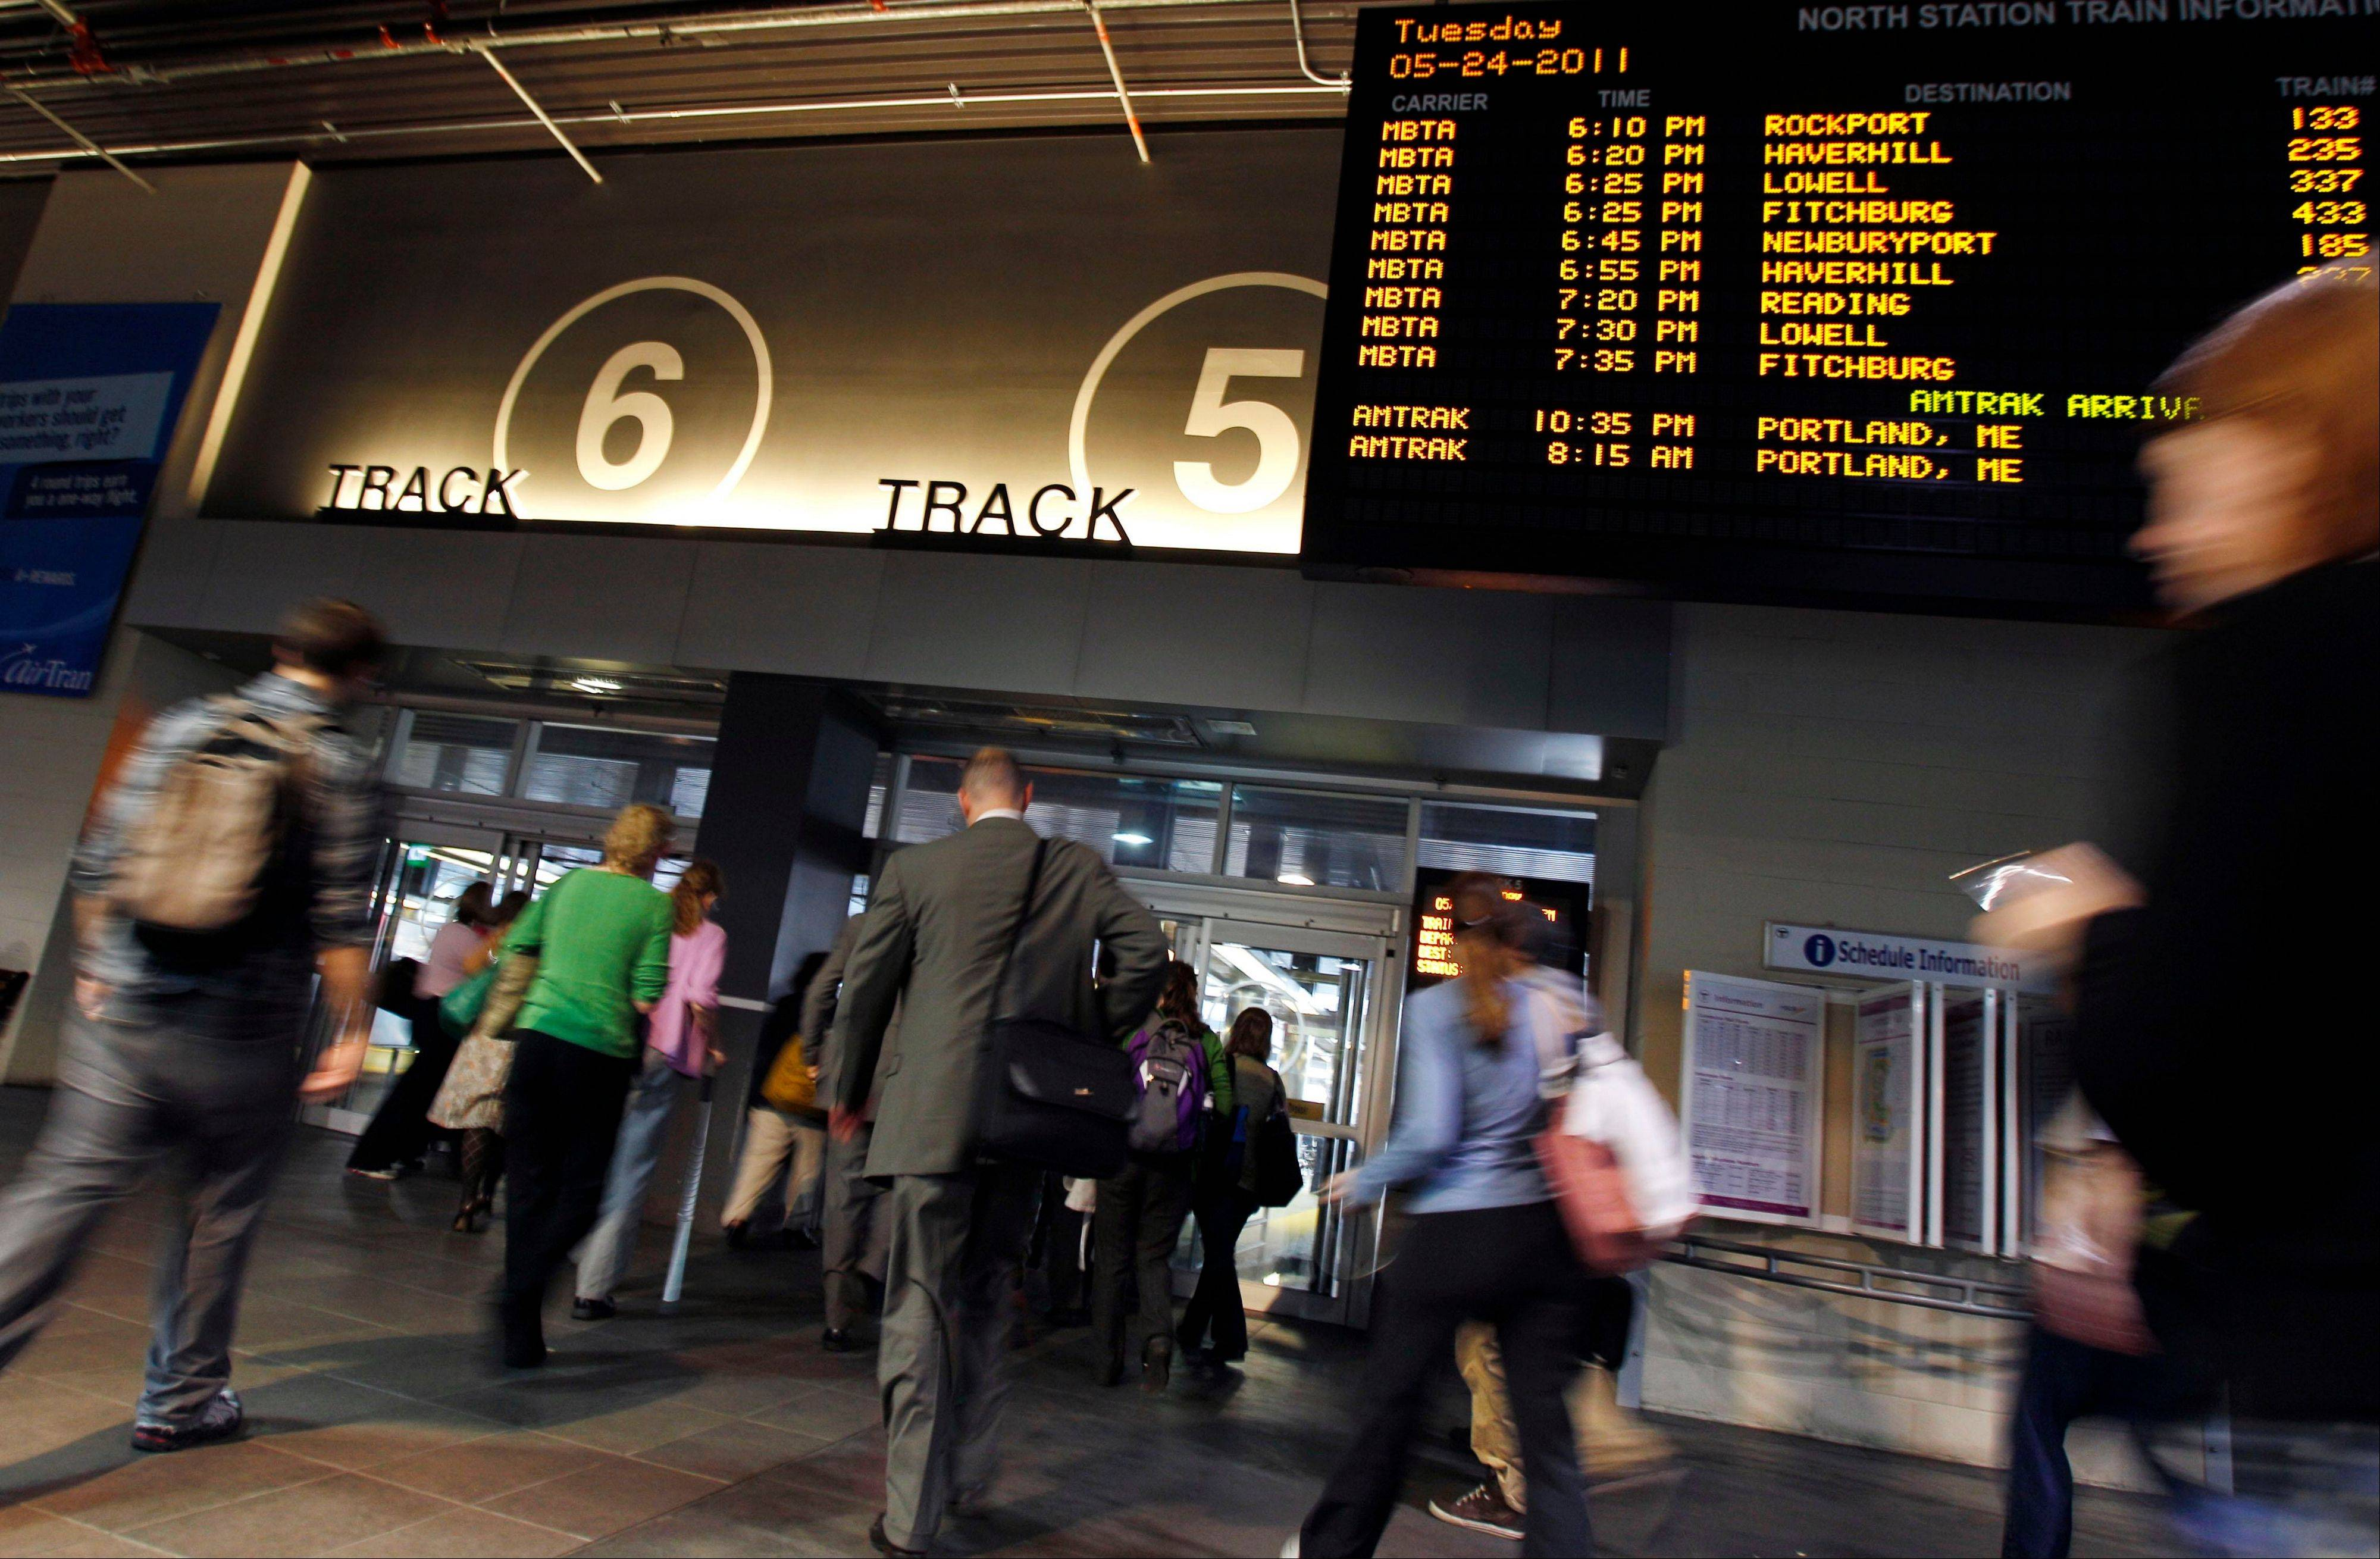 Commuters rush to catch trains at North Station in Boston. By one survey, more than 80 percent of U.S. transit systems had cut service, raised fares or both since the economic downturn started.